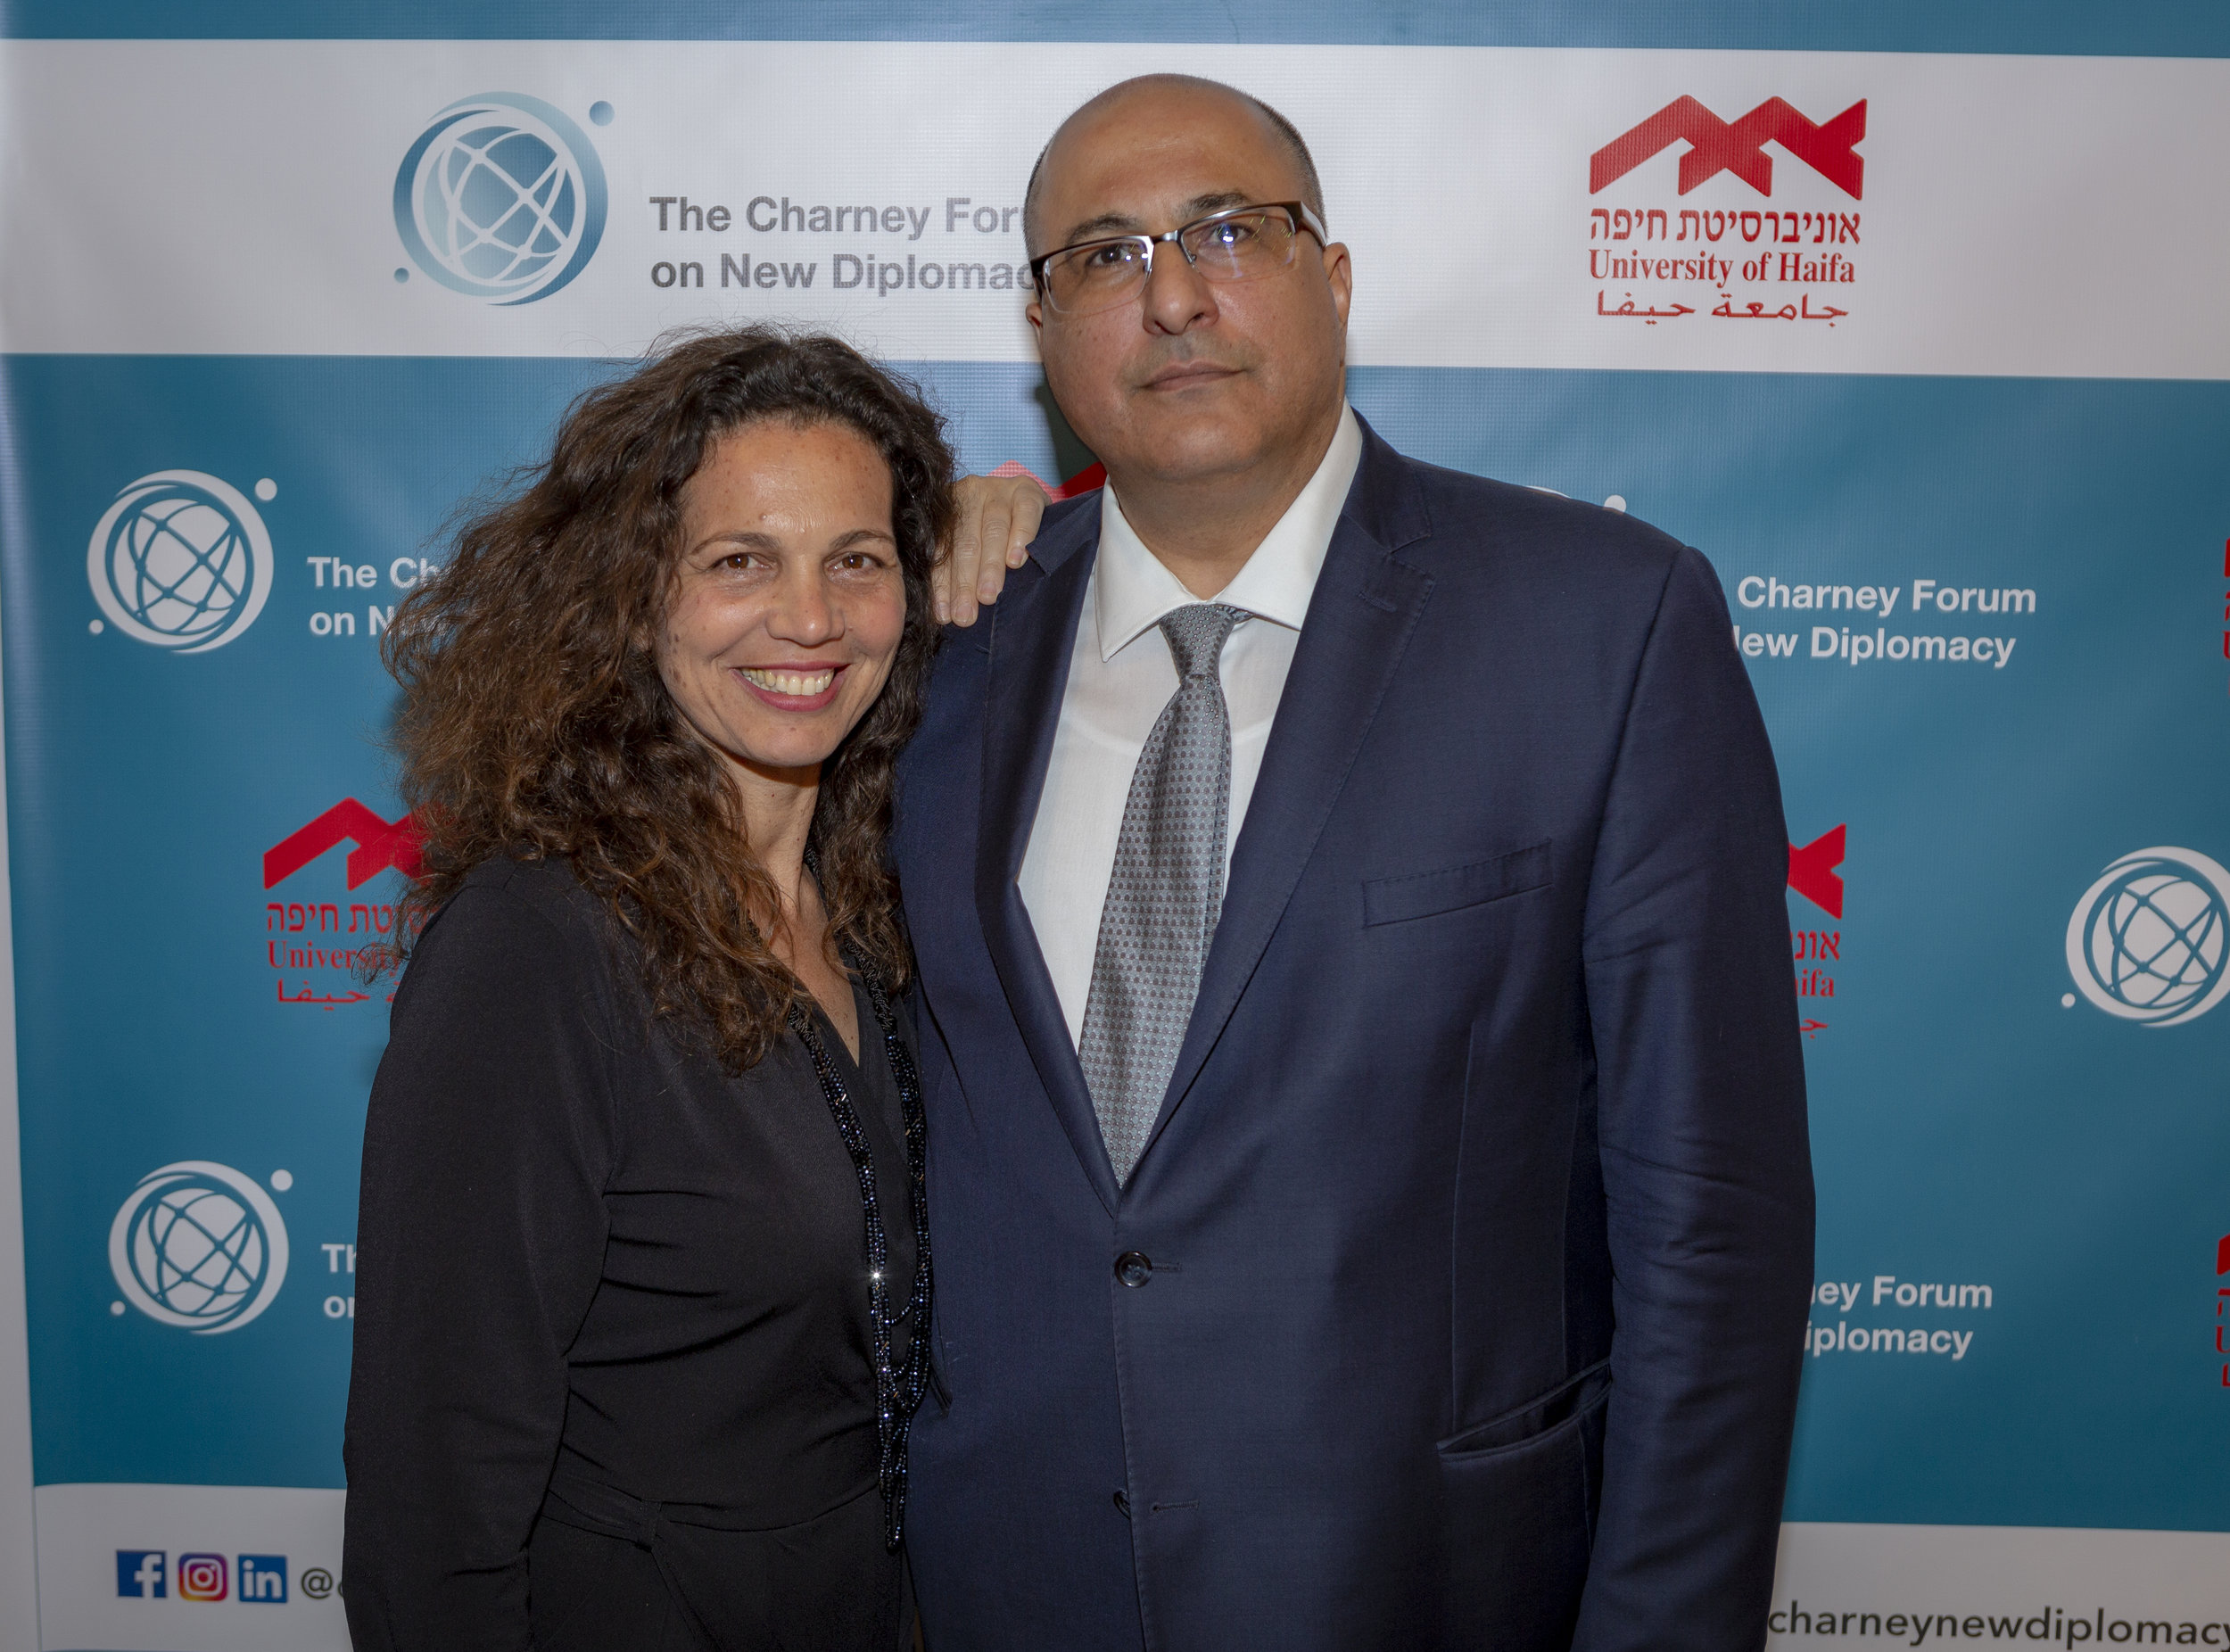 Hila Oren and Ido Aharoni